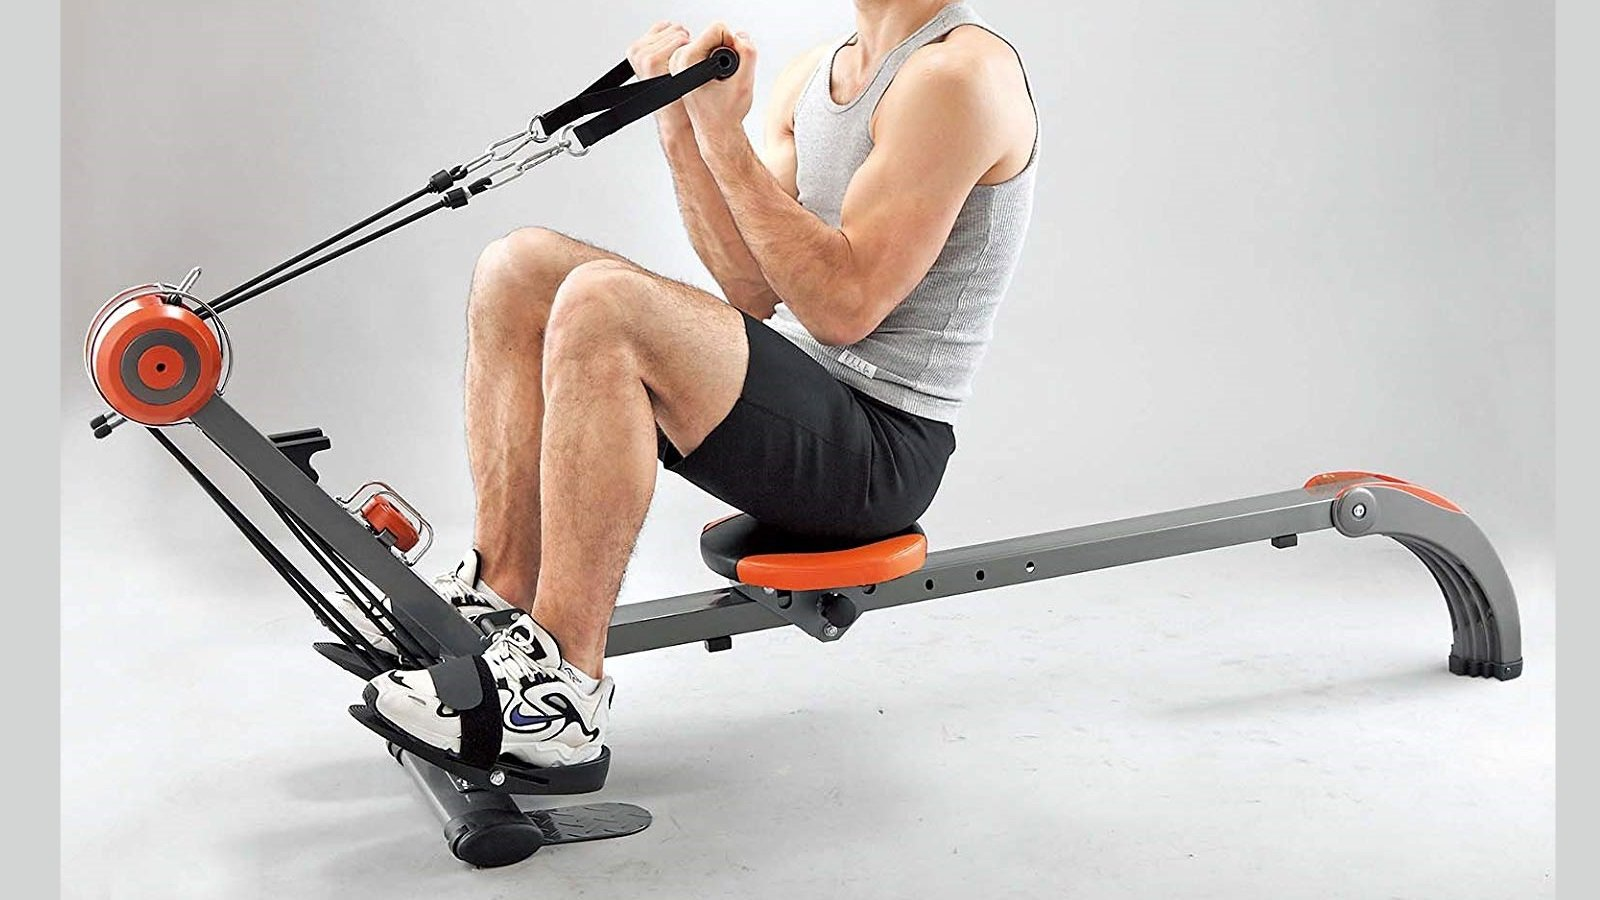 3731359ac60 Here s another affordable option from Body Sculpture  the Rower and Gym  machine